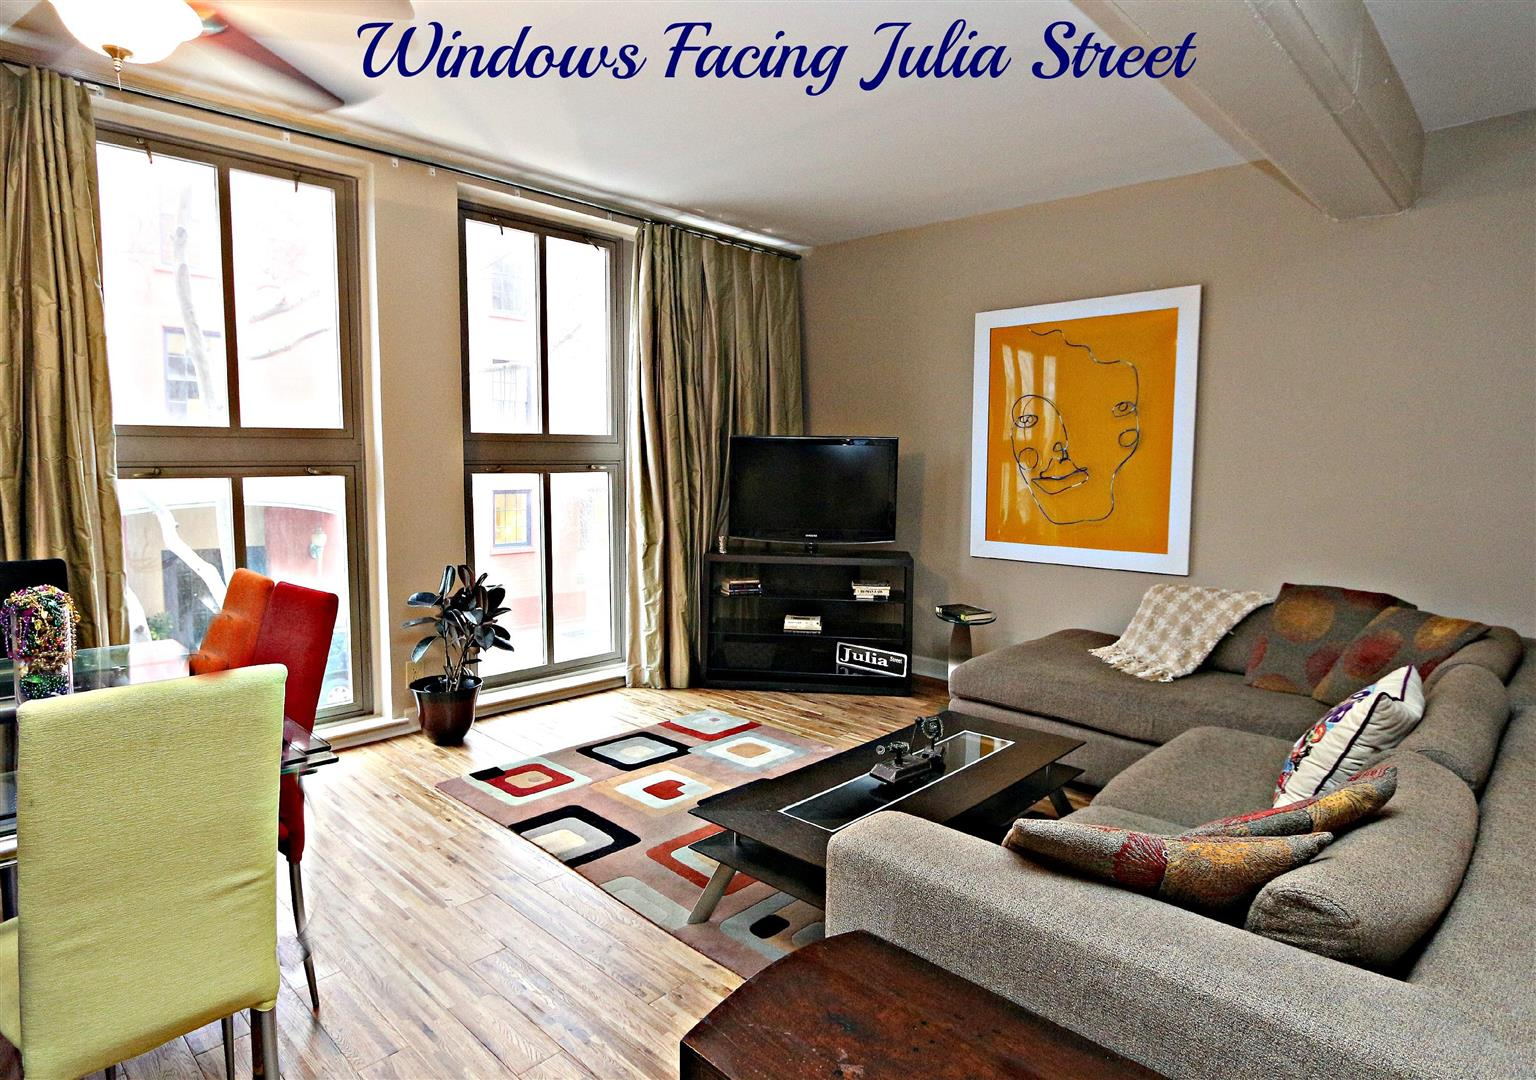 333JuliaStreet209WindowsfacinegJulia.jpg